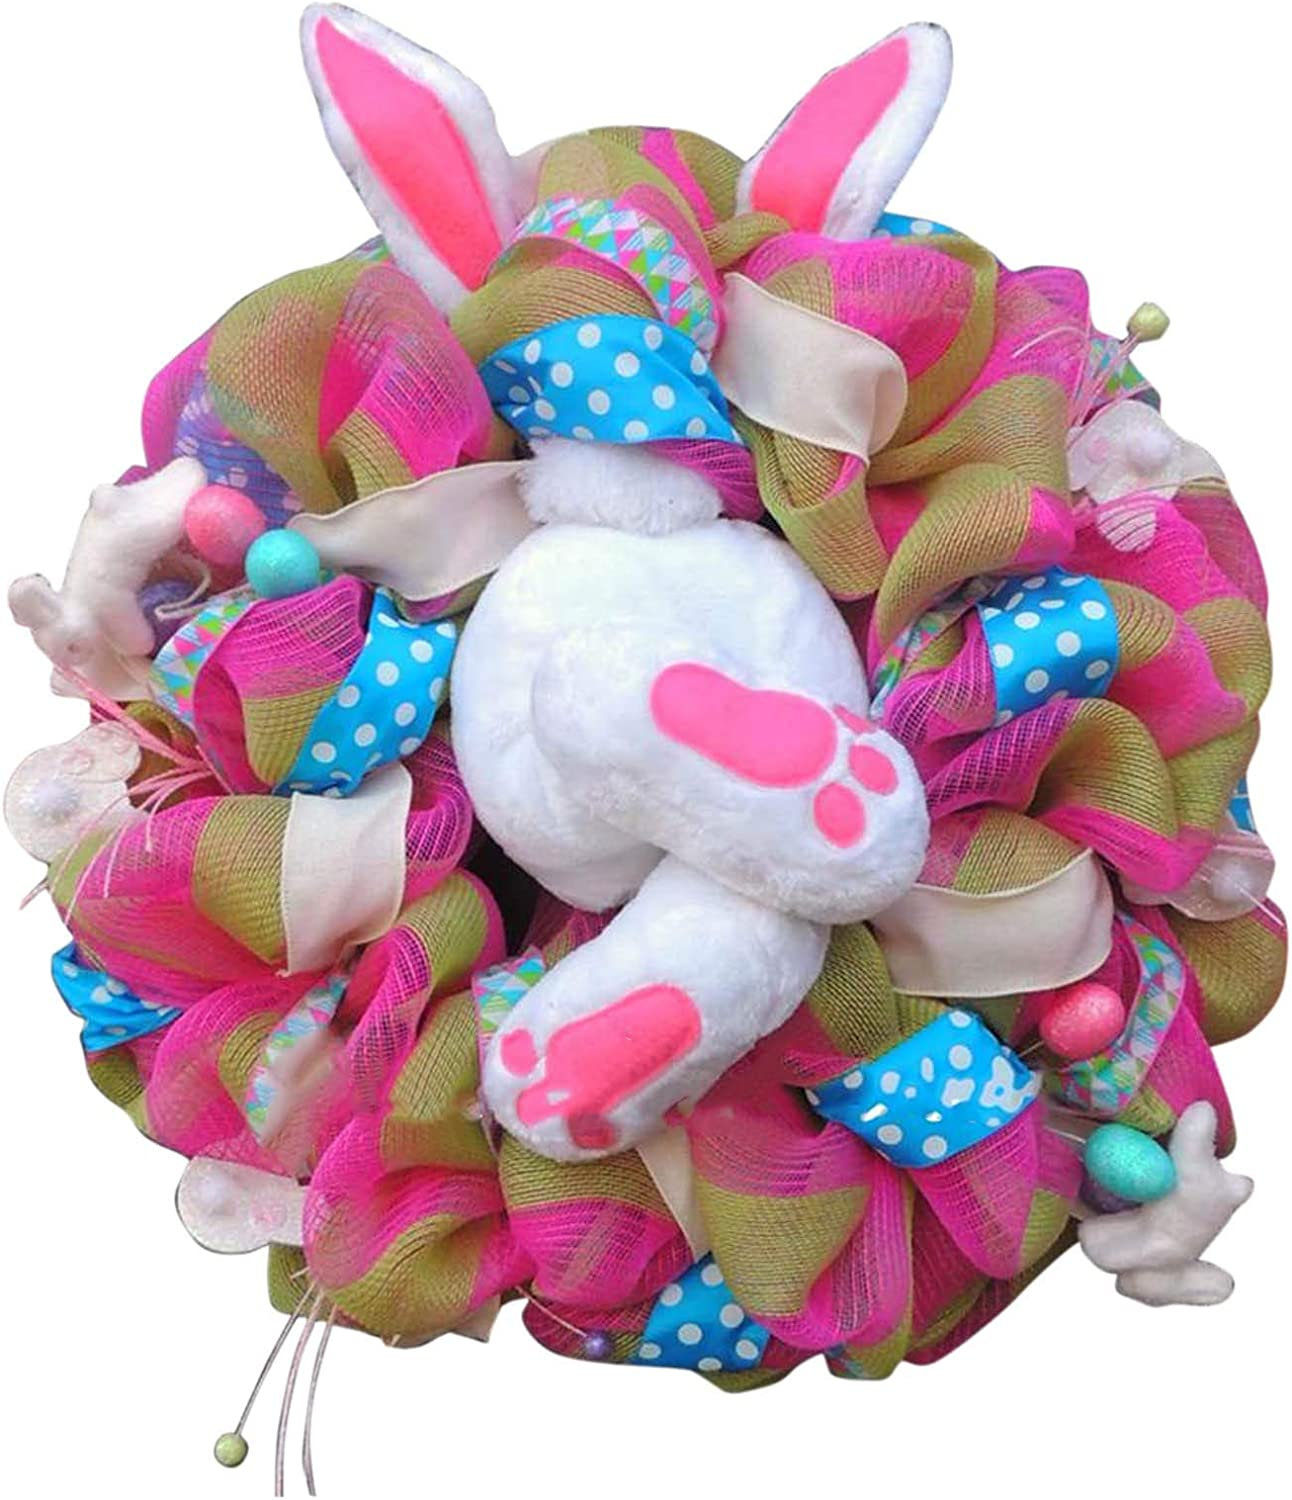 Artificial Eucalyptus Green Leaf Wreaths Easter Front Do Shipping included Rabbit Japan's largest assortment